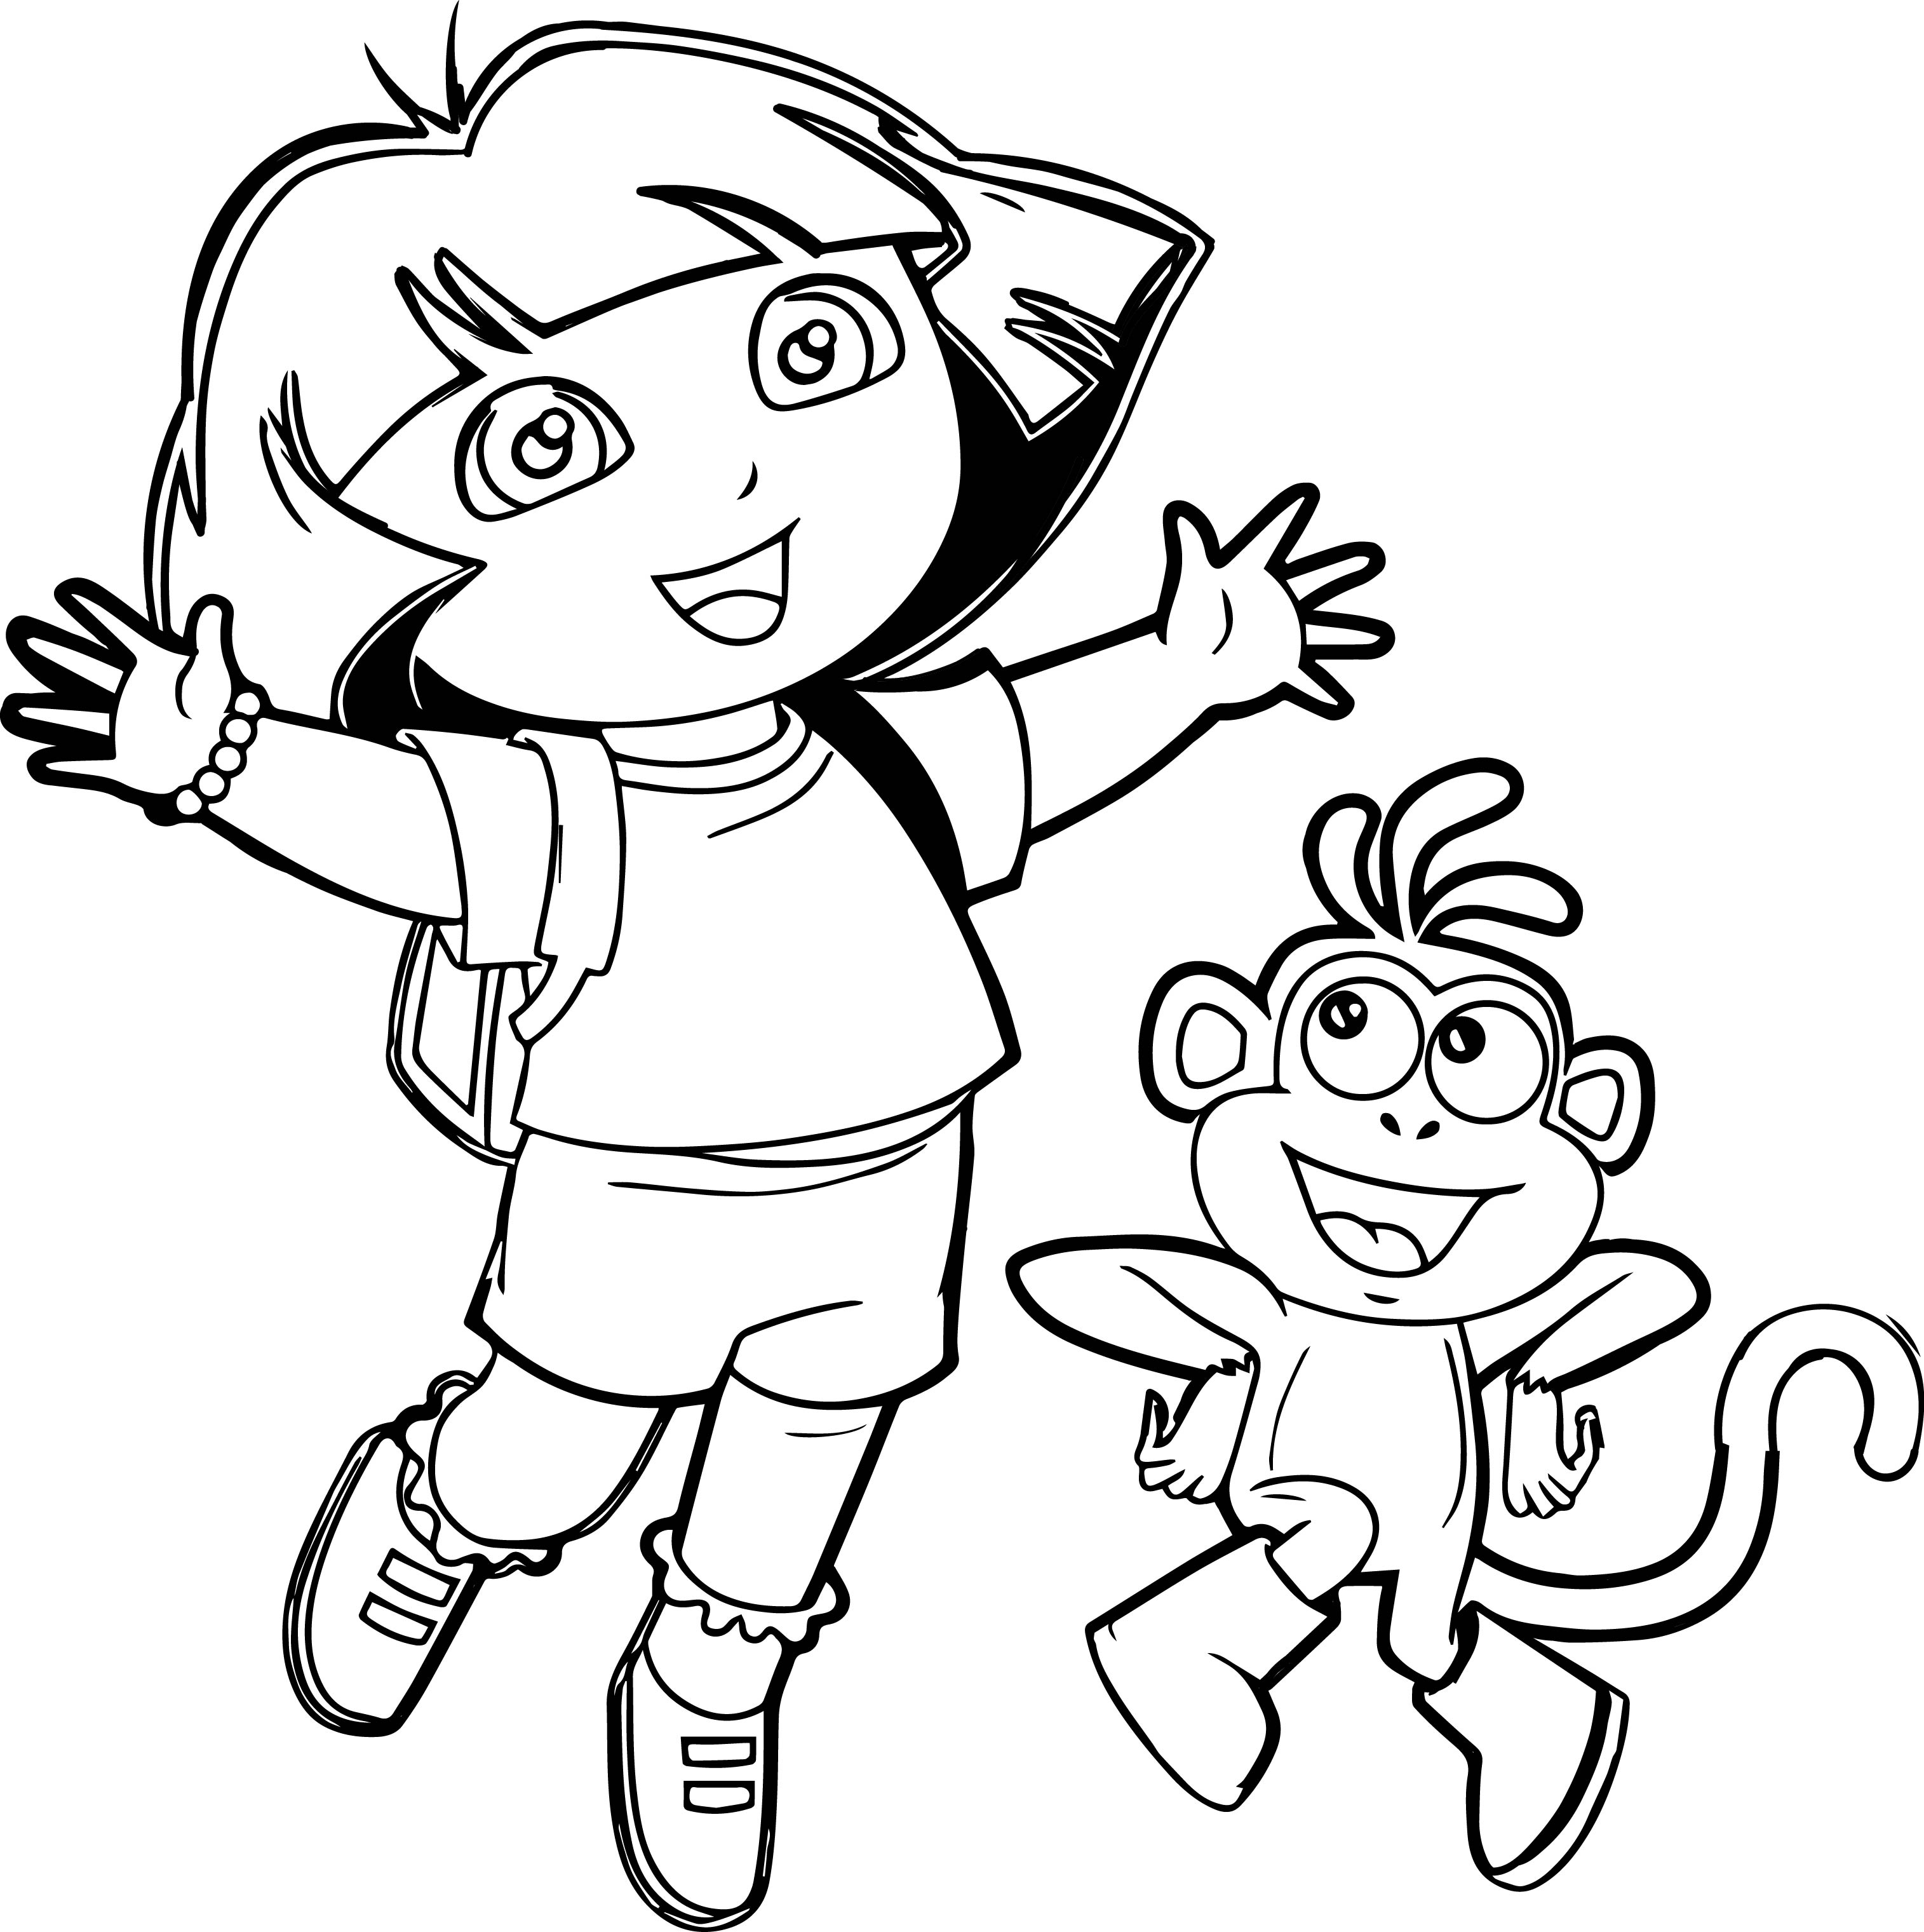 Dora-And-Monkey-Very-Happy-Coloring-Page